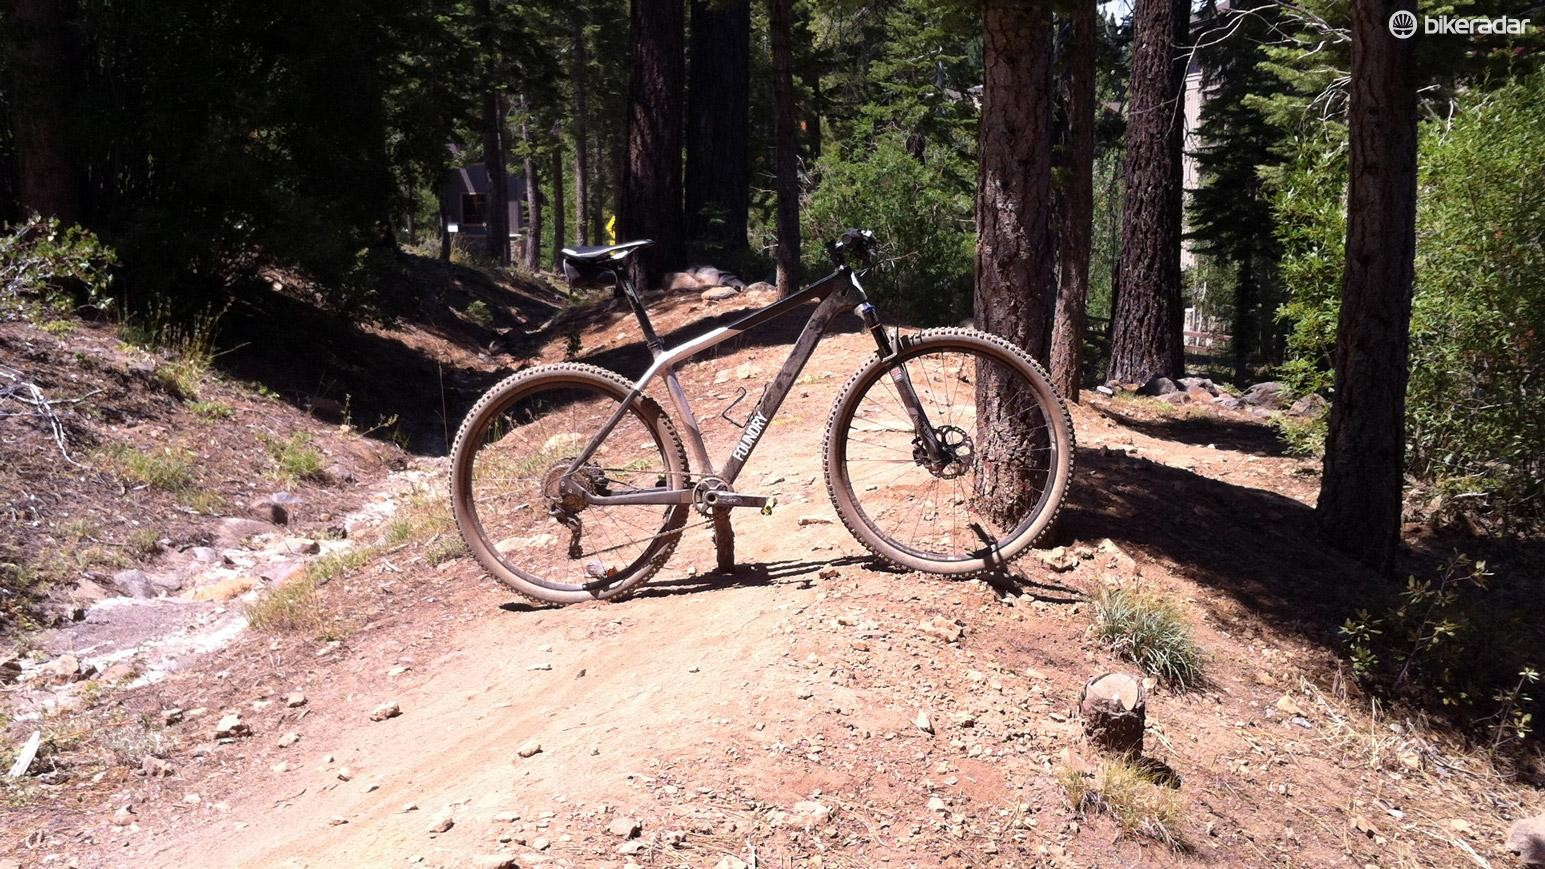 The trails around Truckee, CA were dry, loose and very fast